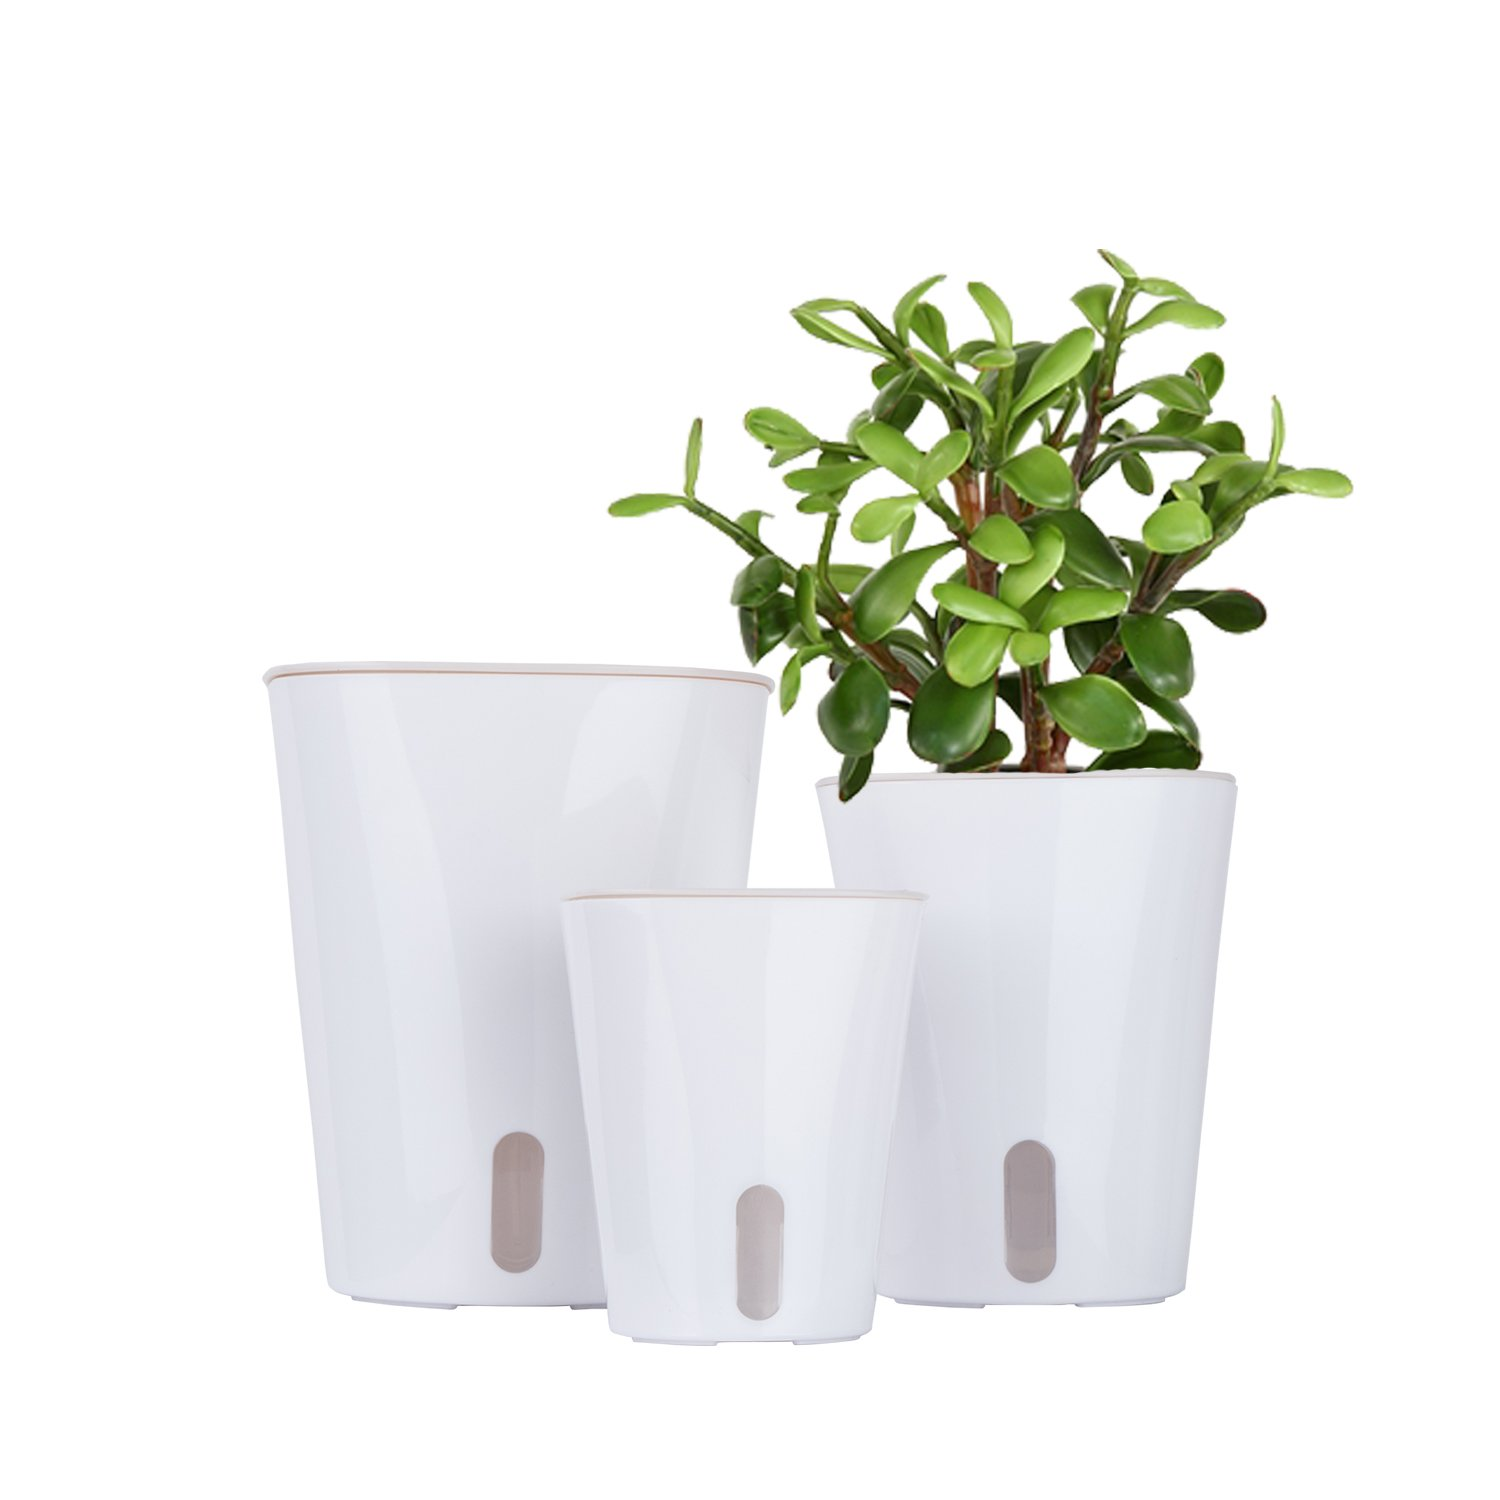 Vencer Self Watering Planter (3 Pack) Modern Decorative Planter Pot for All House Plants Flowers, Herbs,African Violets,Succulents,White,VF-066